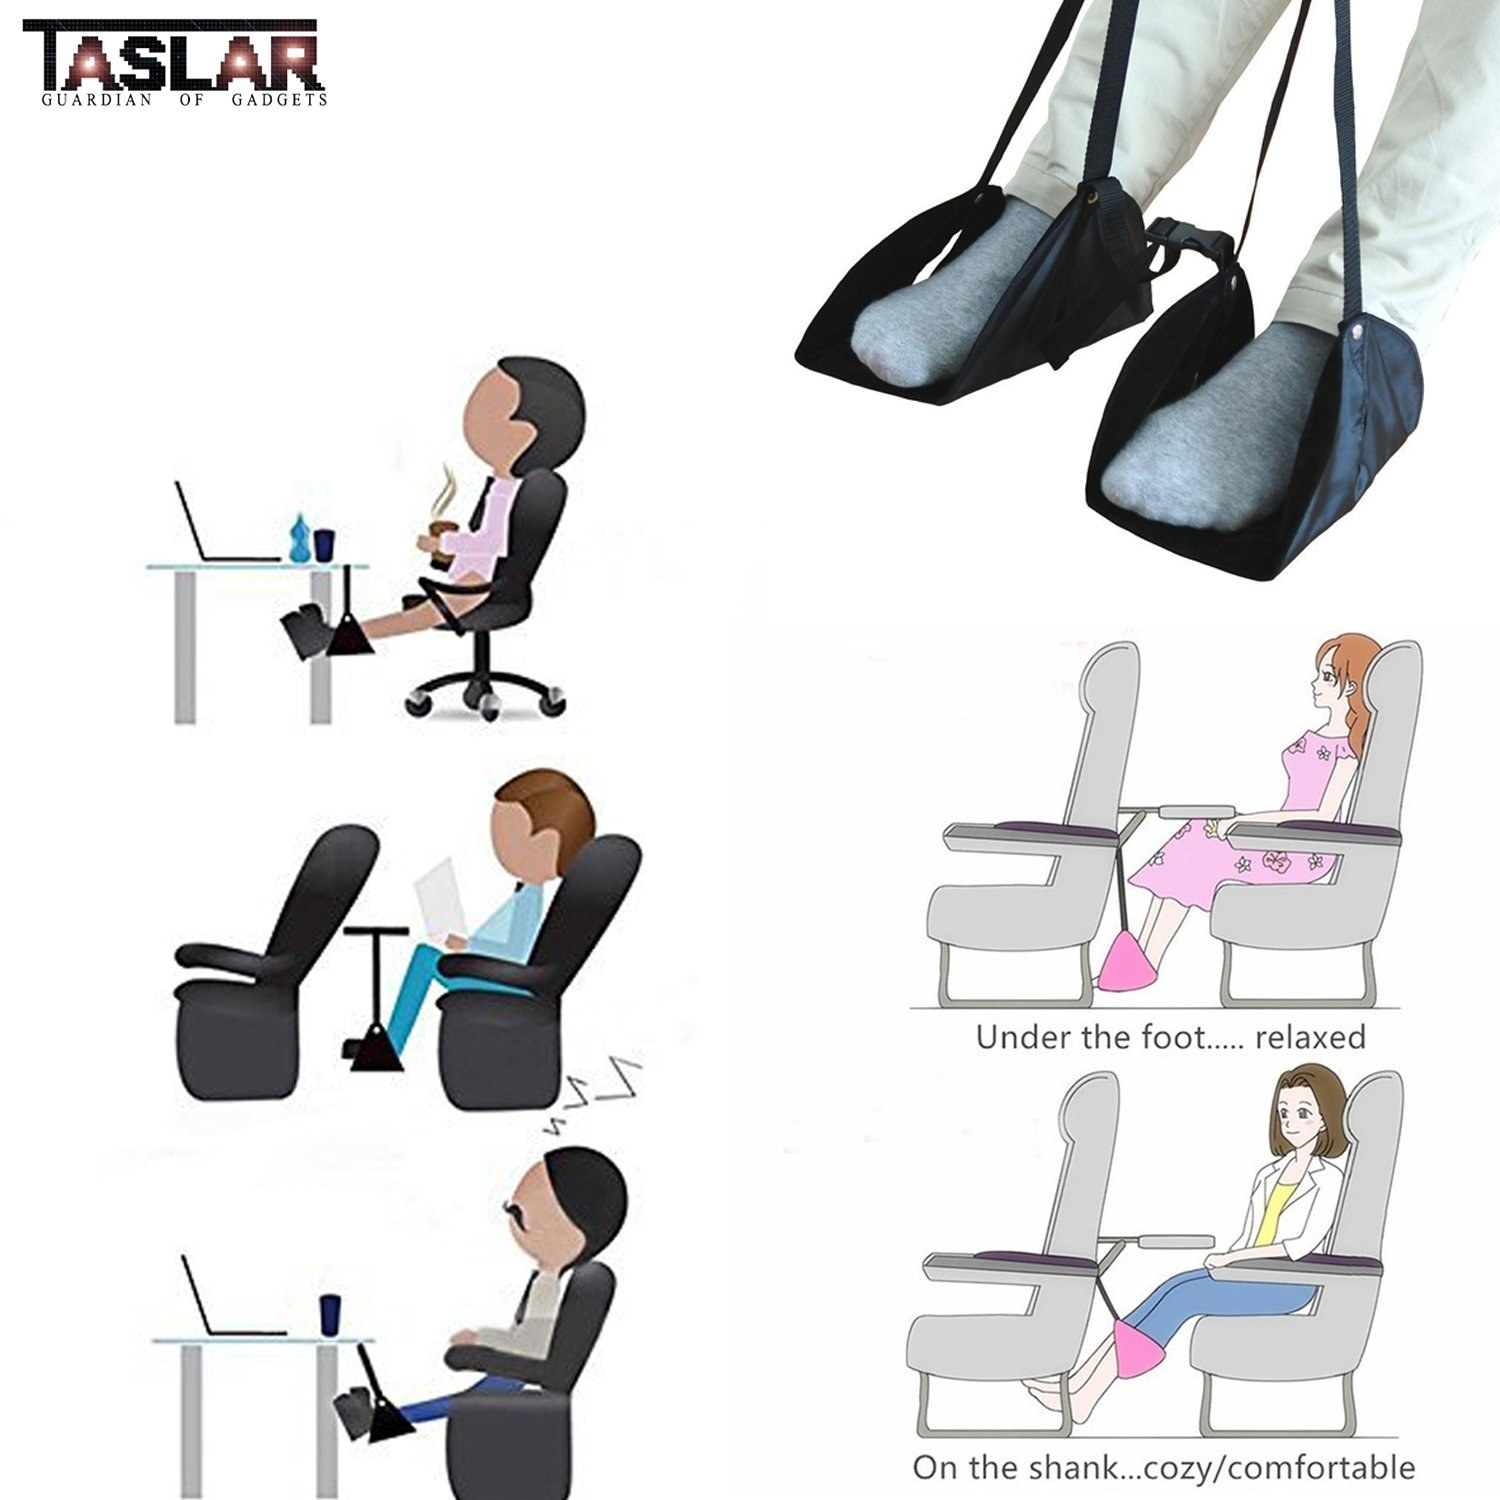 A collage of cartoons showing various use cases of the hammock, like in the office, in a flight, etc.